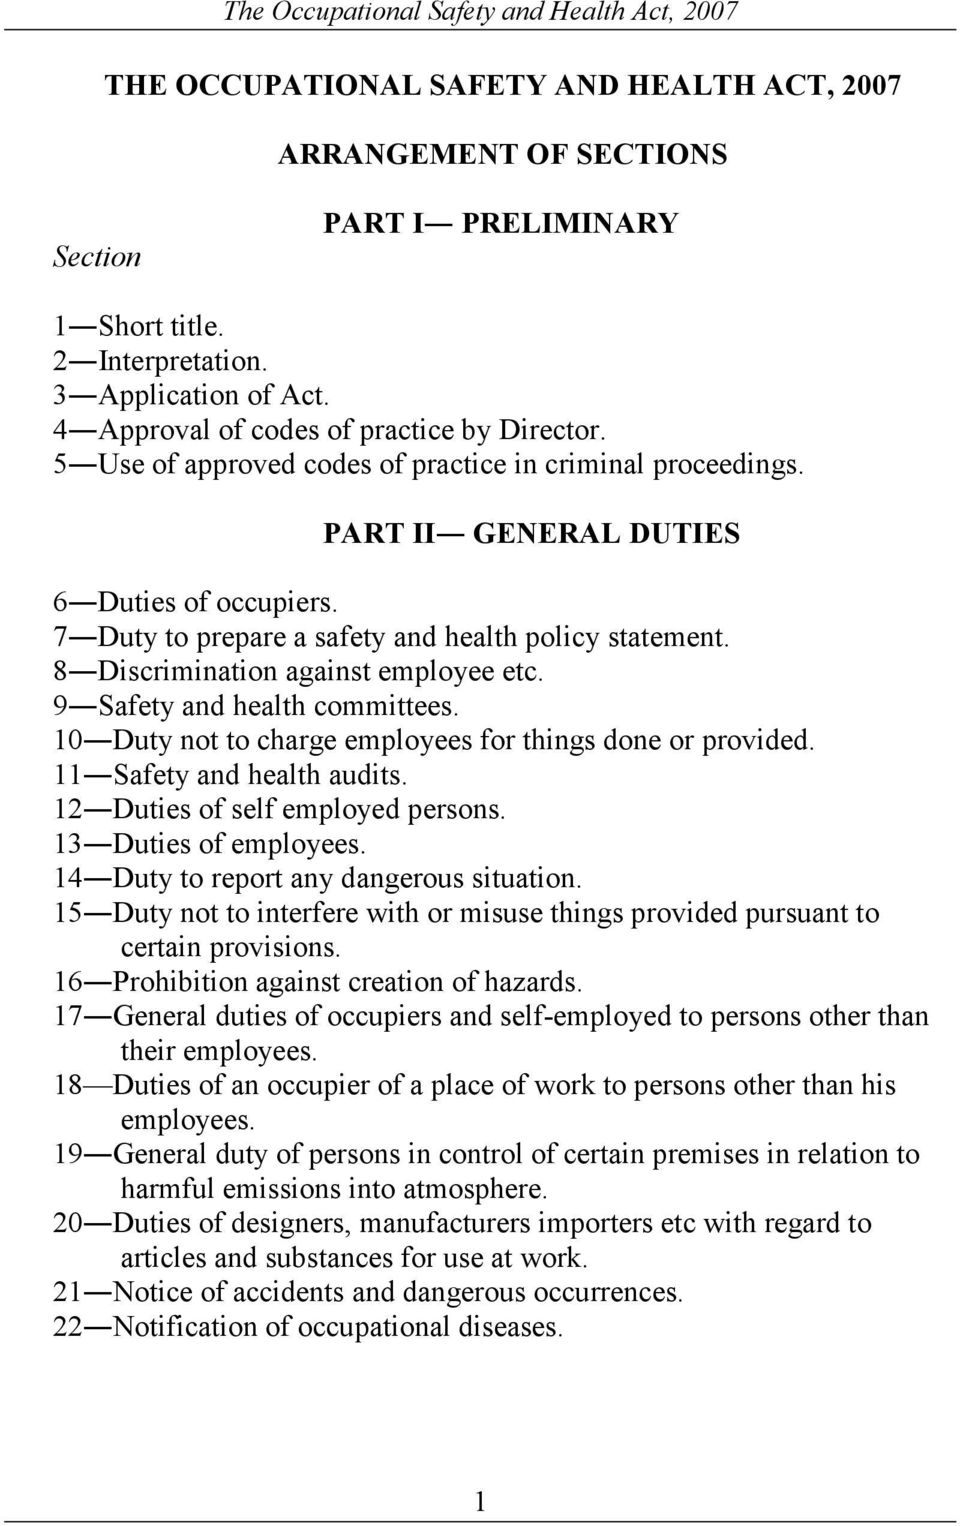 8 Discrimination against employee etc. 9 Safety and health committees. 10 Duty not to charge employees for things done or provided. 11 Safety and health audits. 12 Duties of self employed persons.